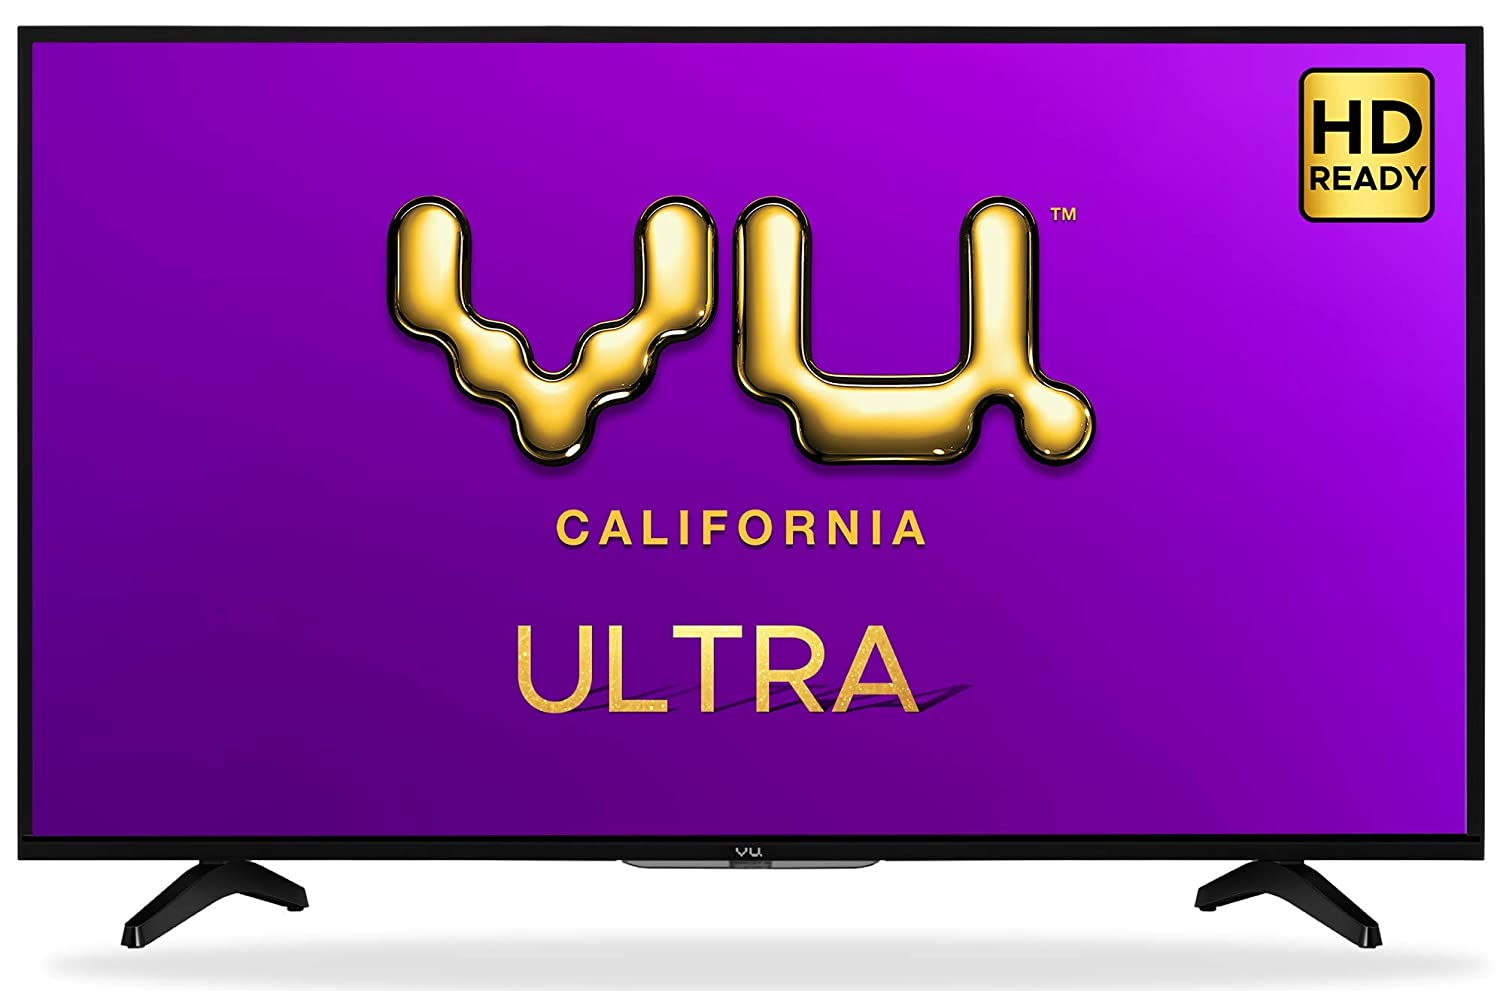 Vu 32 Inch LED HD Ready TV (Ultra Android 32GA) Online at ...